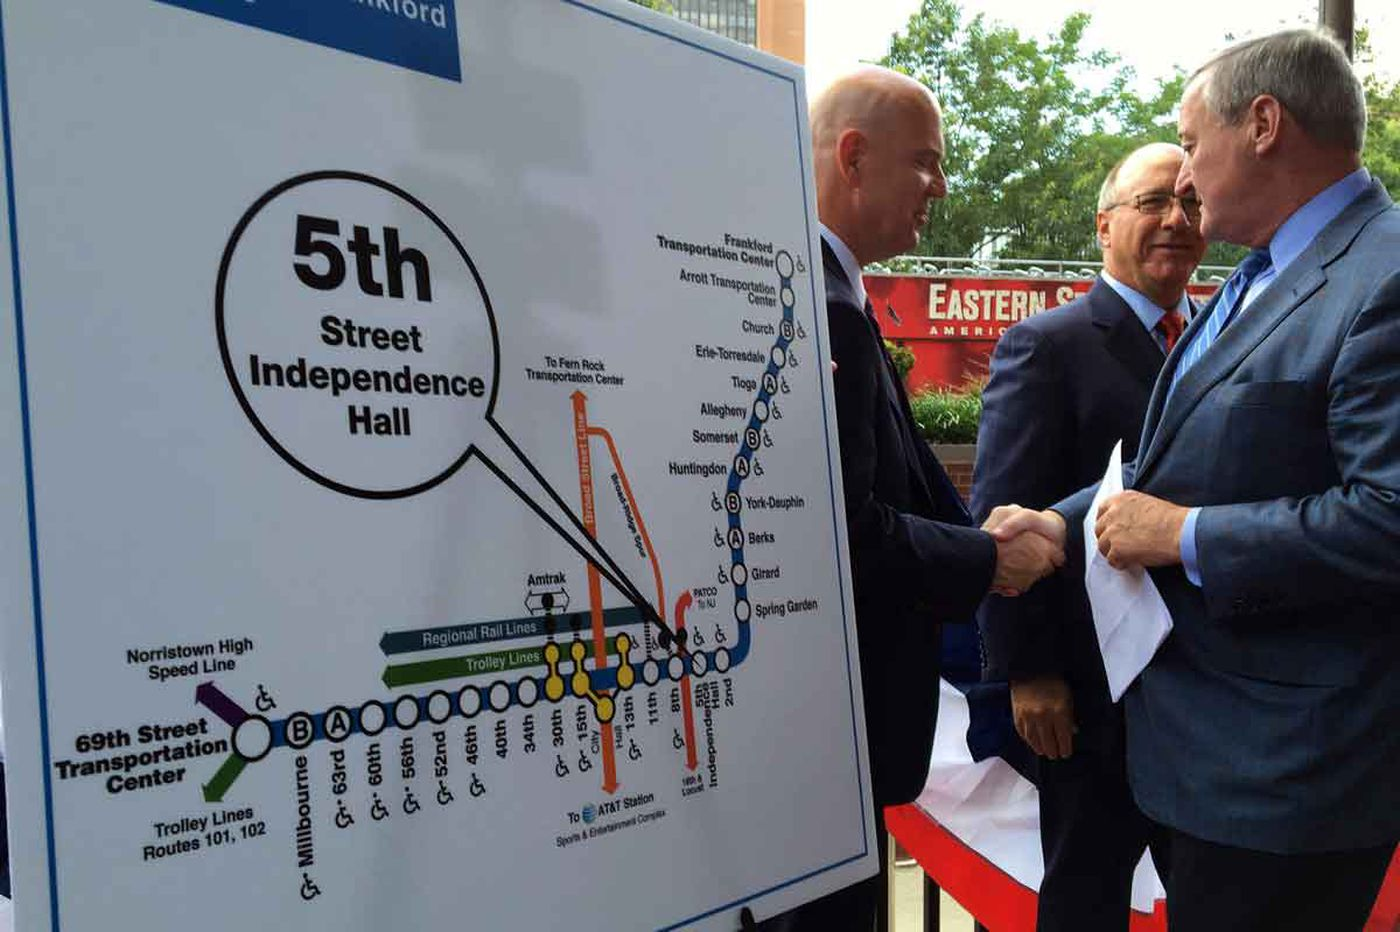 New name for Fifth Street subway stop